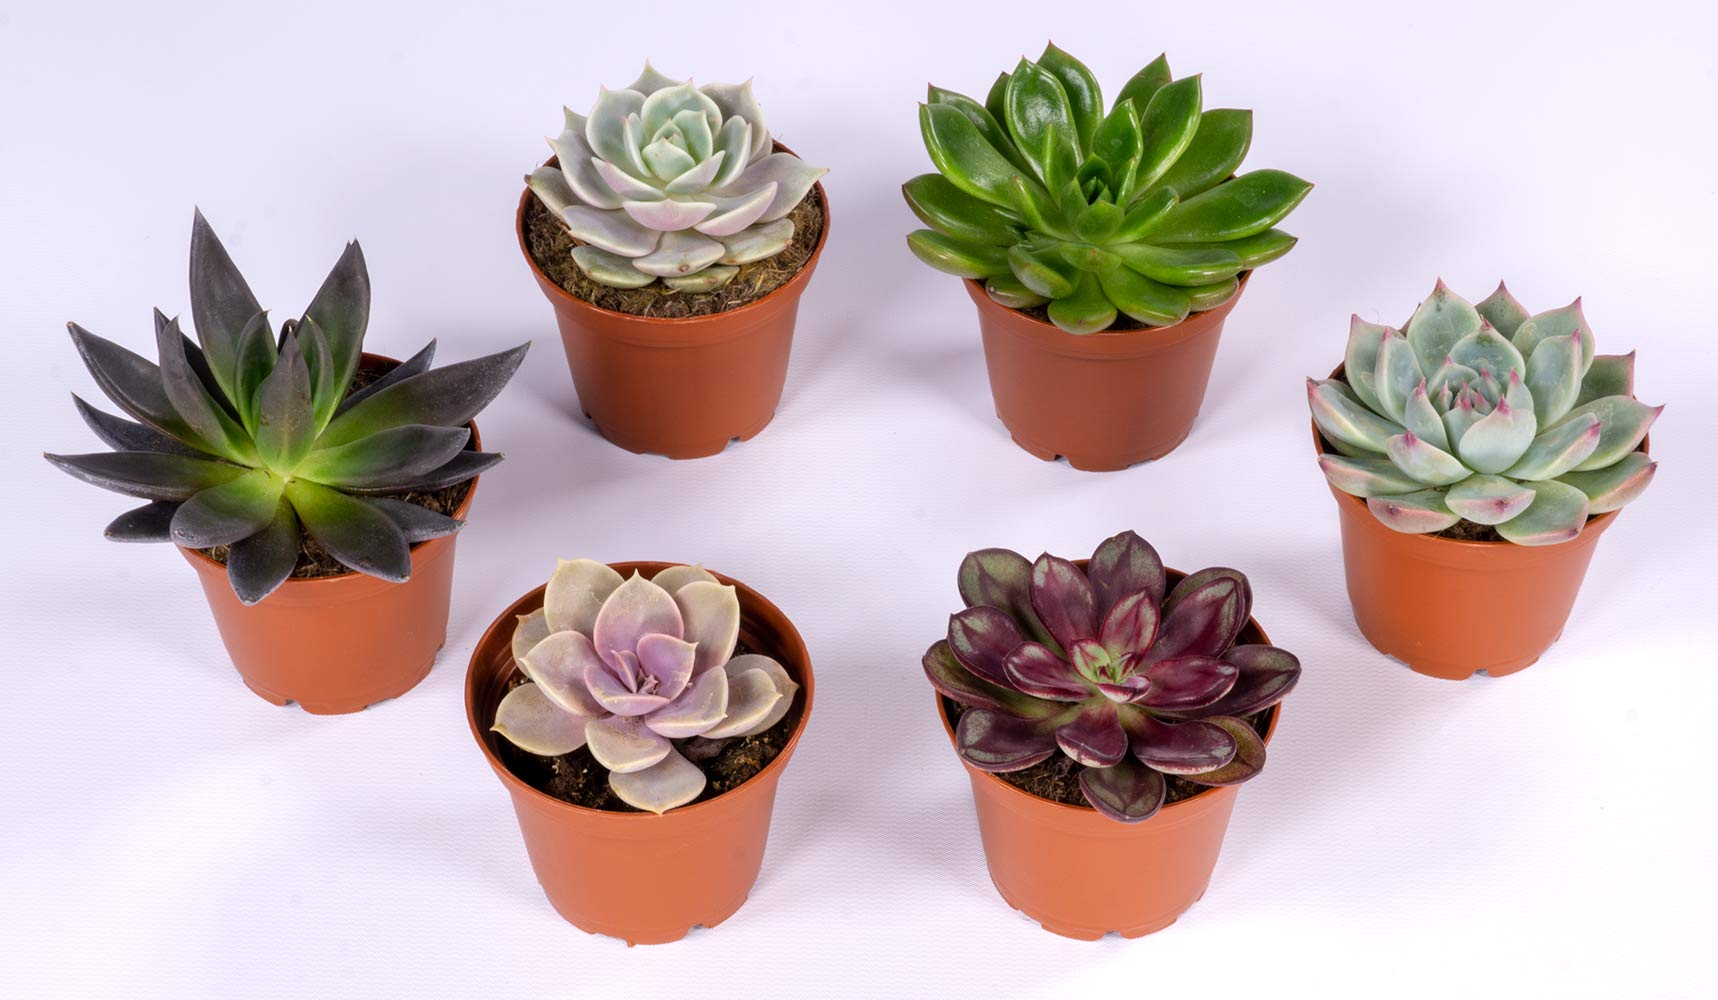 Seville Farms SUC012 Succulent Plant 6 Pack - 2.5'' Fuly Rooted, Potted with Soil Mini, Multicolor